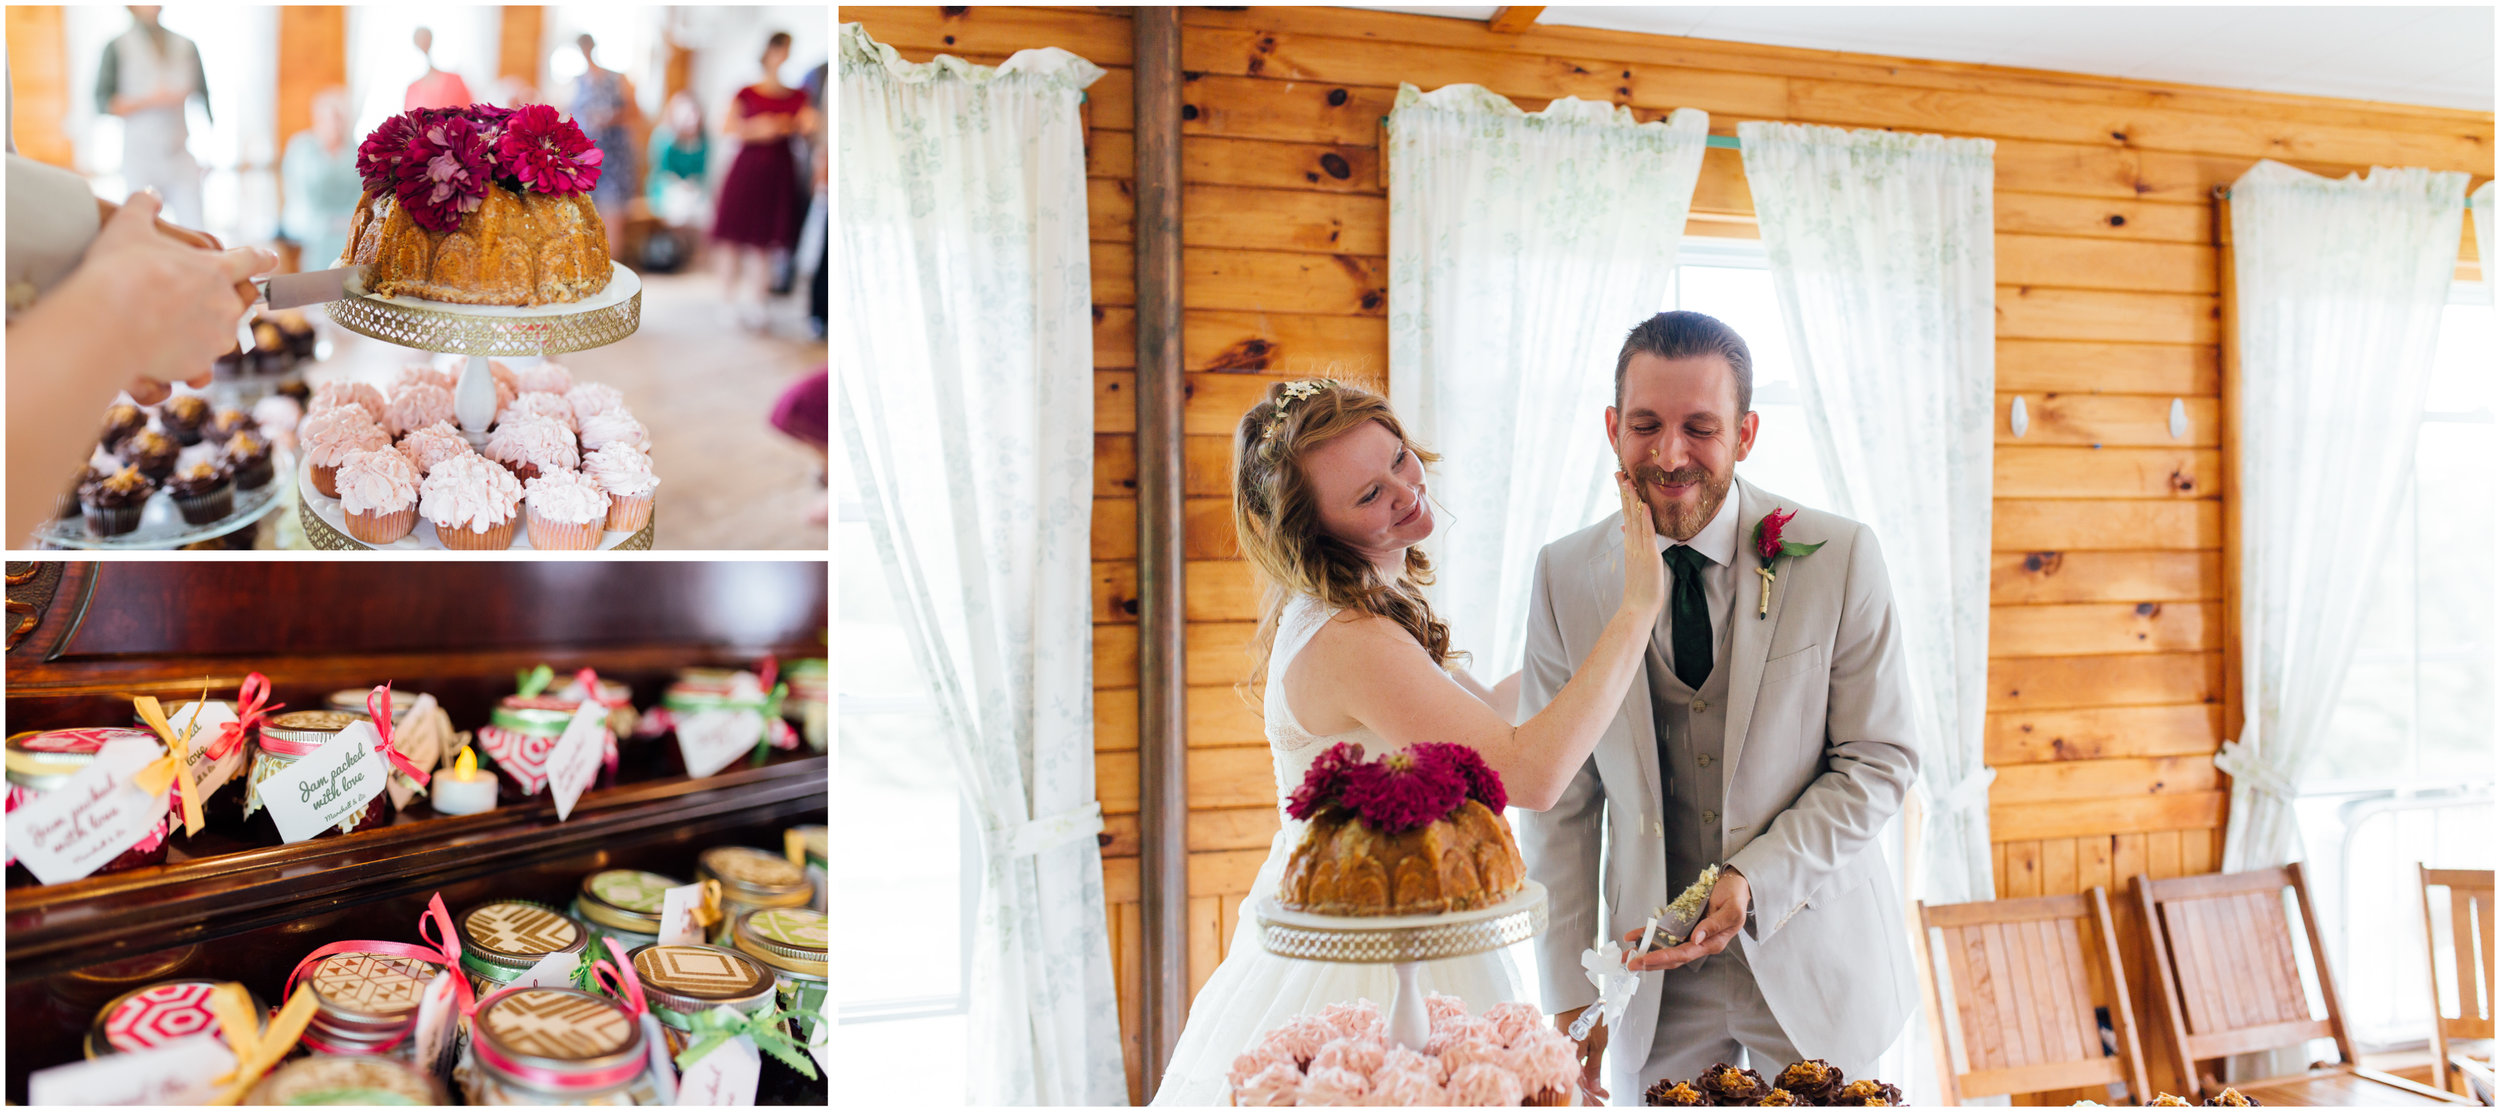 Bride and groom cut cake and bride smashes cake in groom's face and laughs